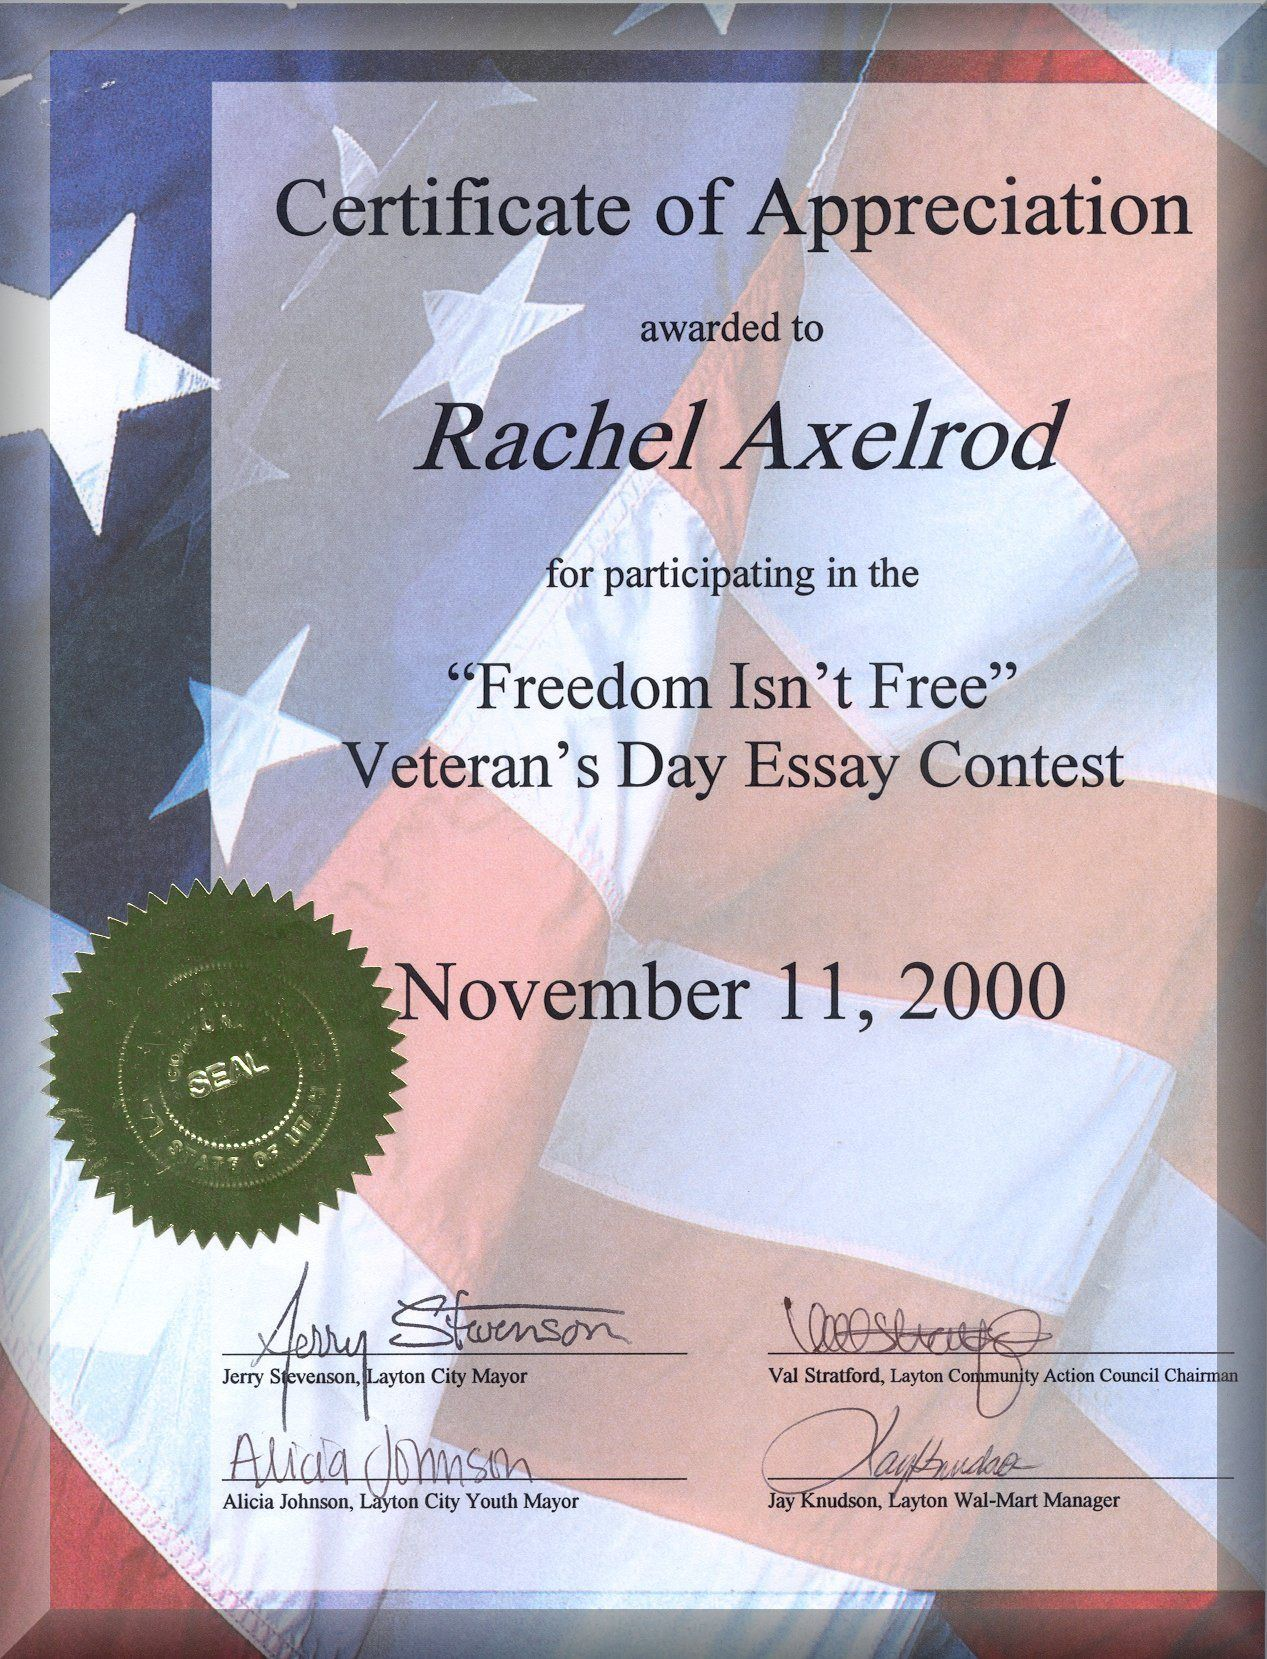 Veteran certificate of appreciation printable related pictures veteran certificate of appreciation printable related pictures award free award certificate templates pictures yadclub Choice Image